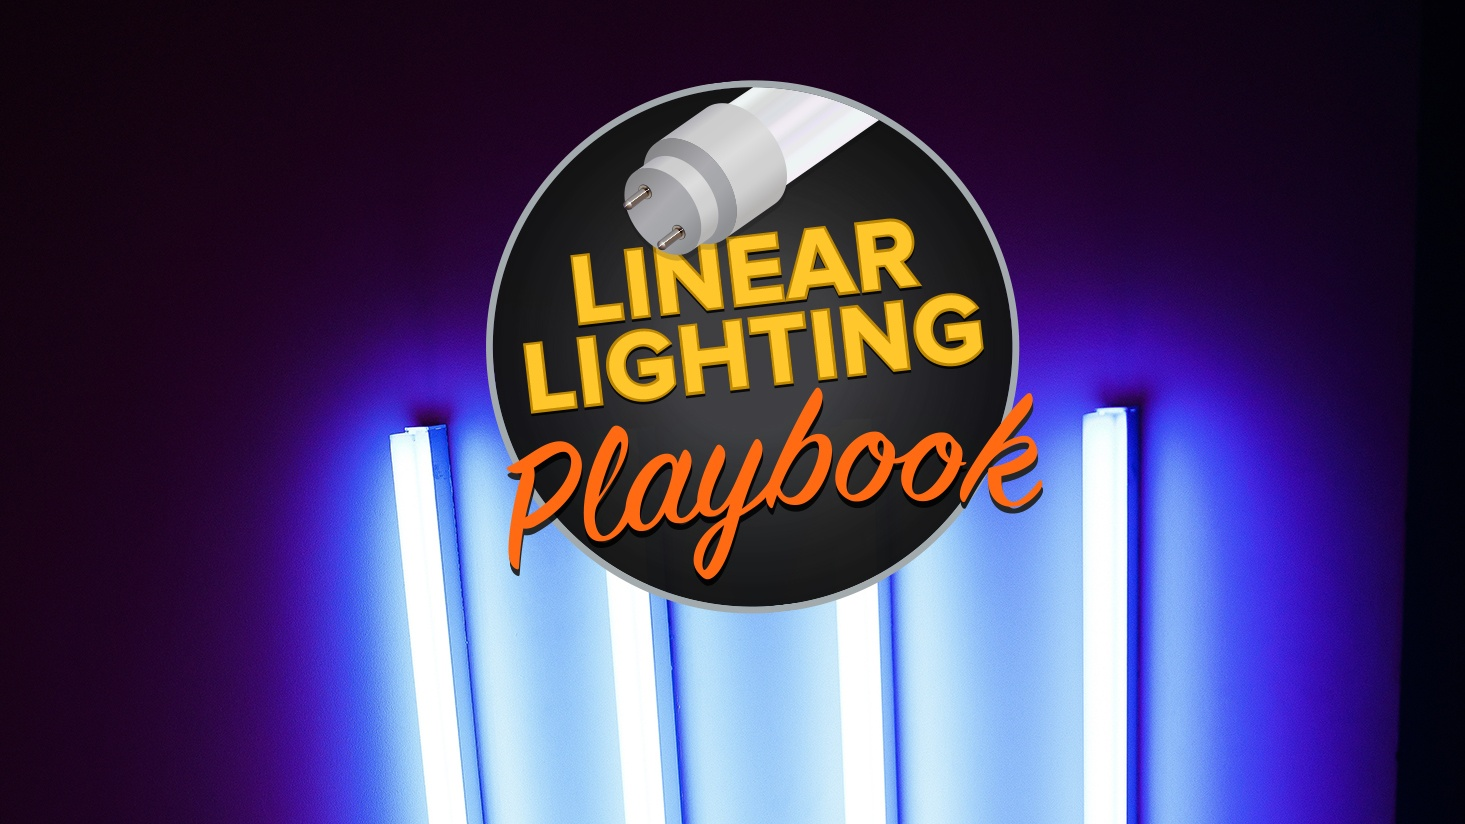 Linear-lighting-fluorescent-LED-playbook.jpg